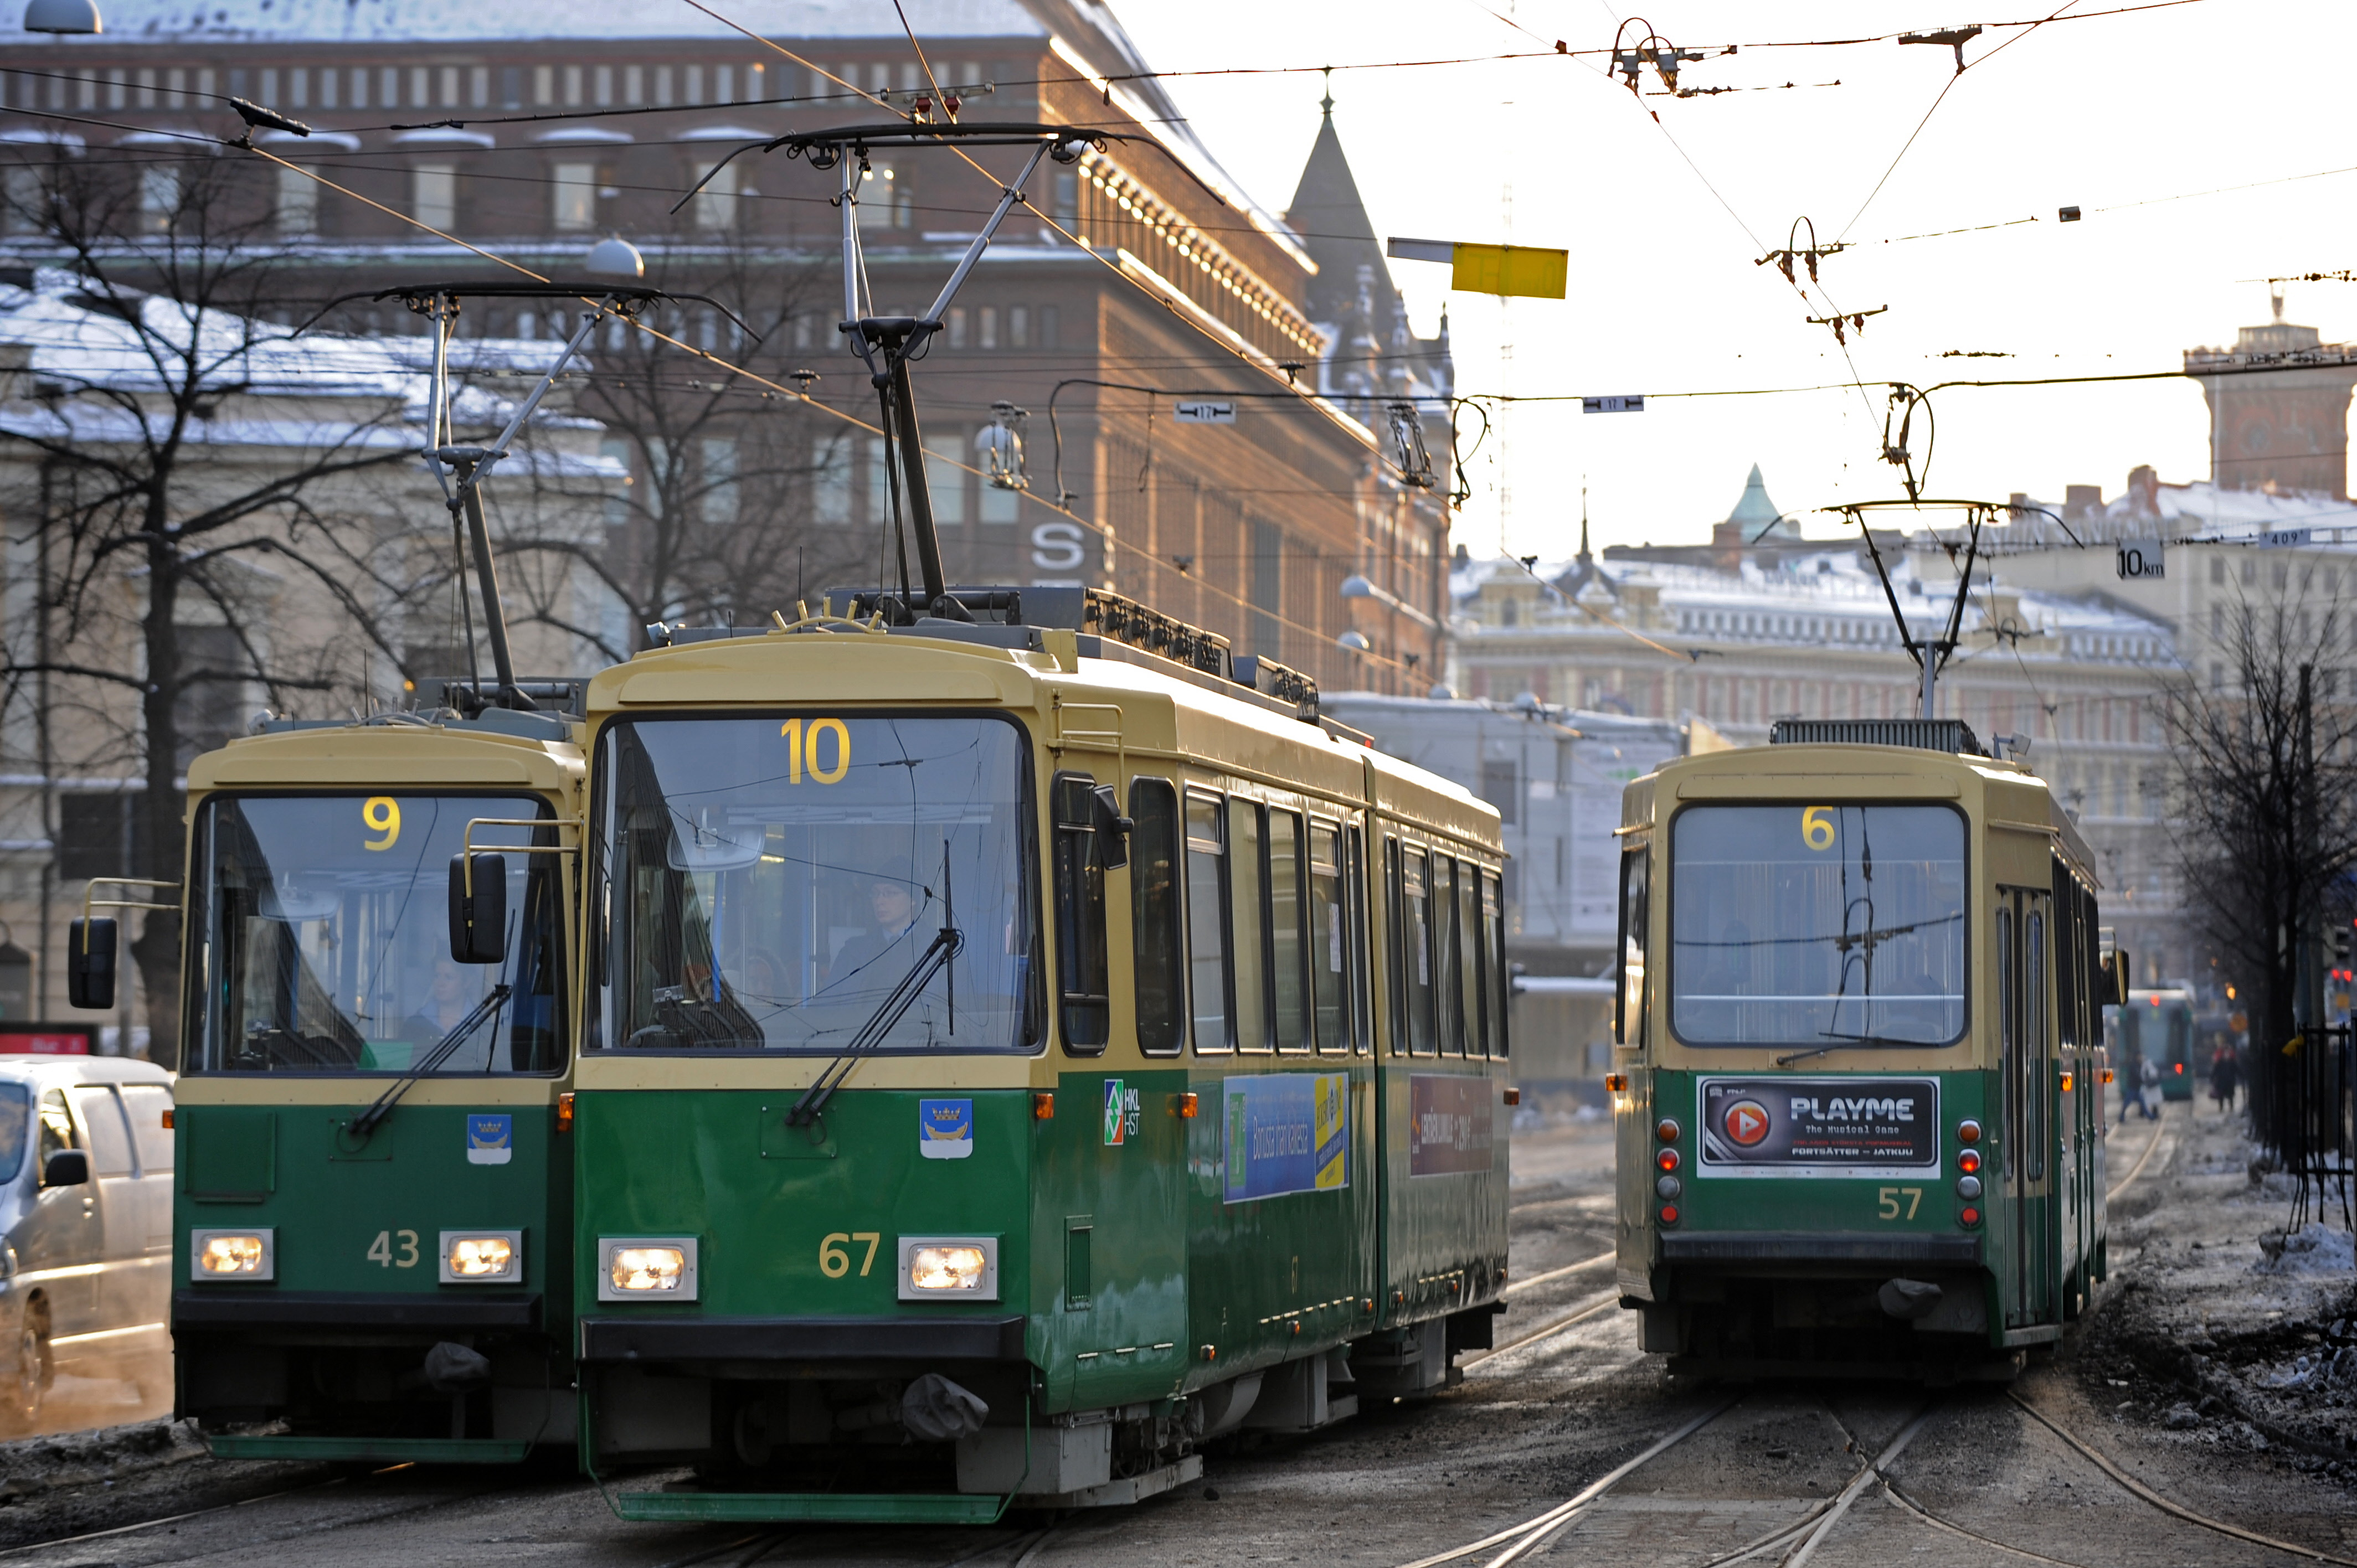 HKL company's trams from line 9, 10 and 6 pass on the main street Mannerheimintie on Jan. 20, 2010, in Helsinki's city center.